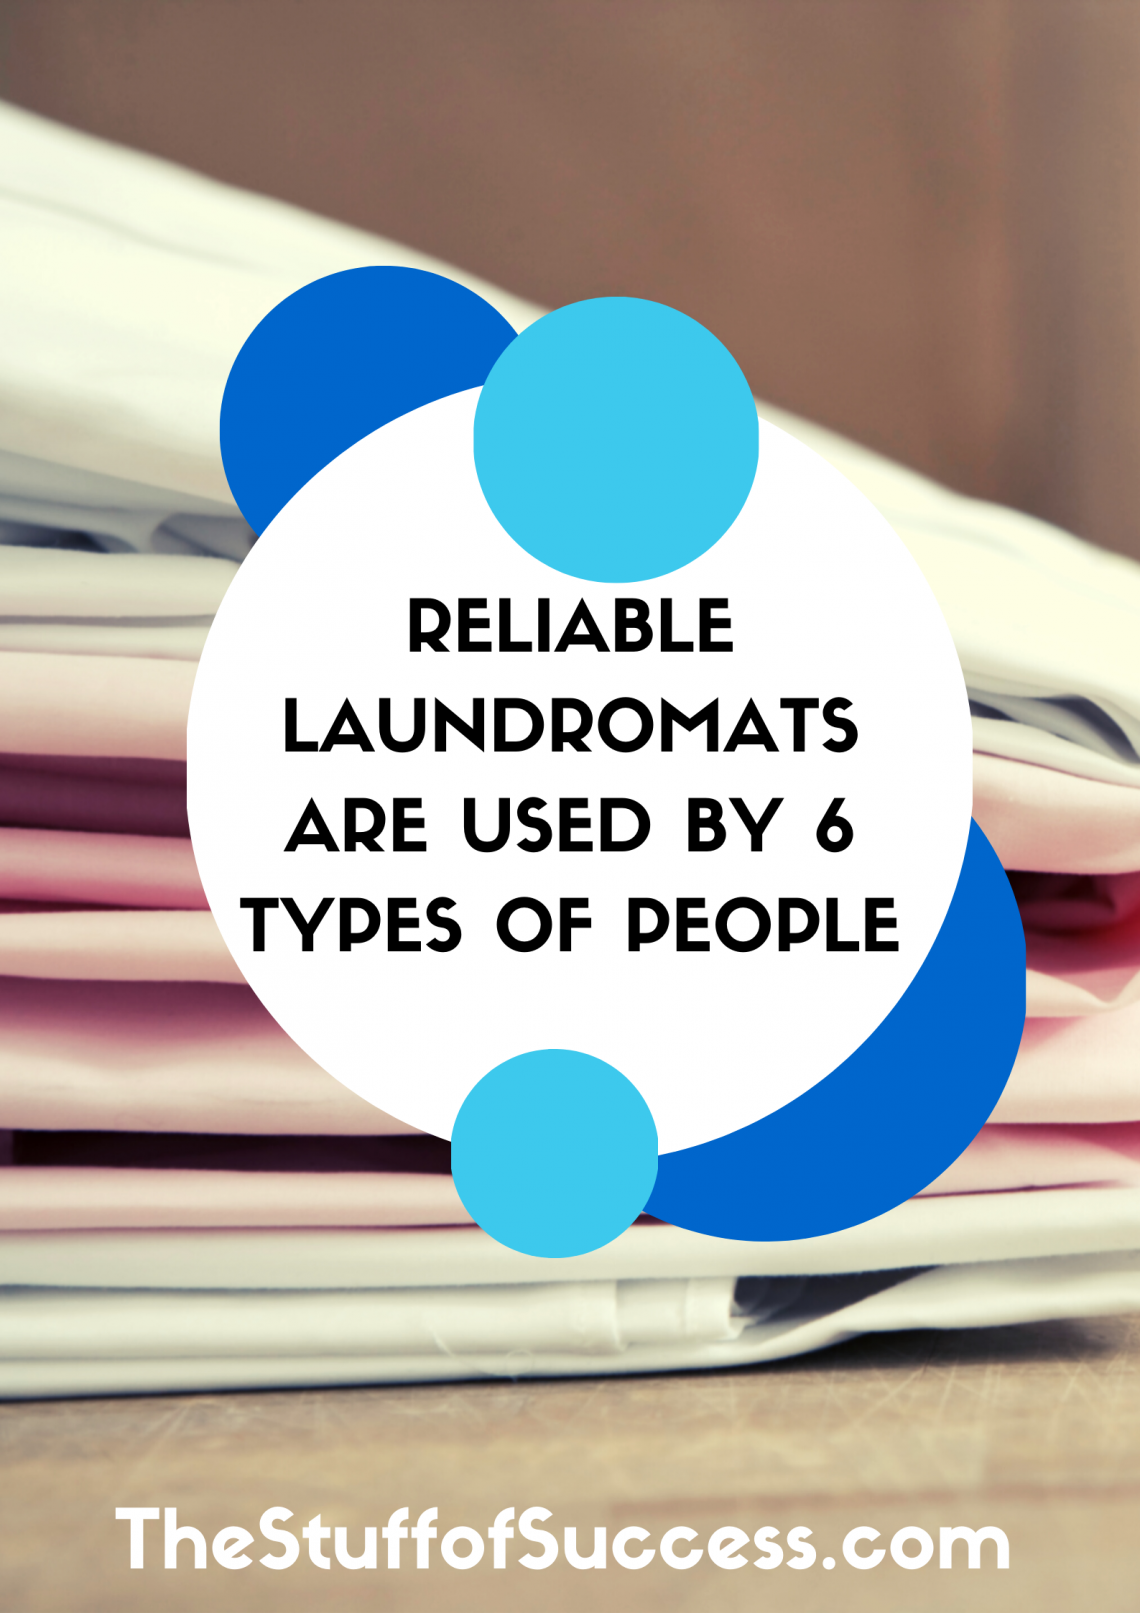 Reliable Laundromats Are Used By 6 Types of People